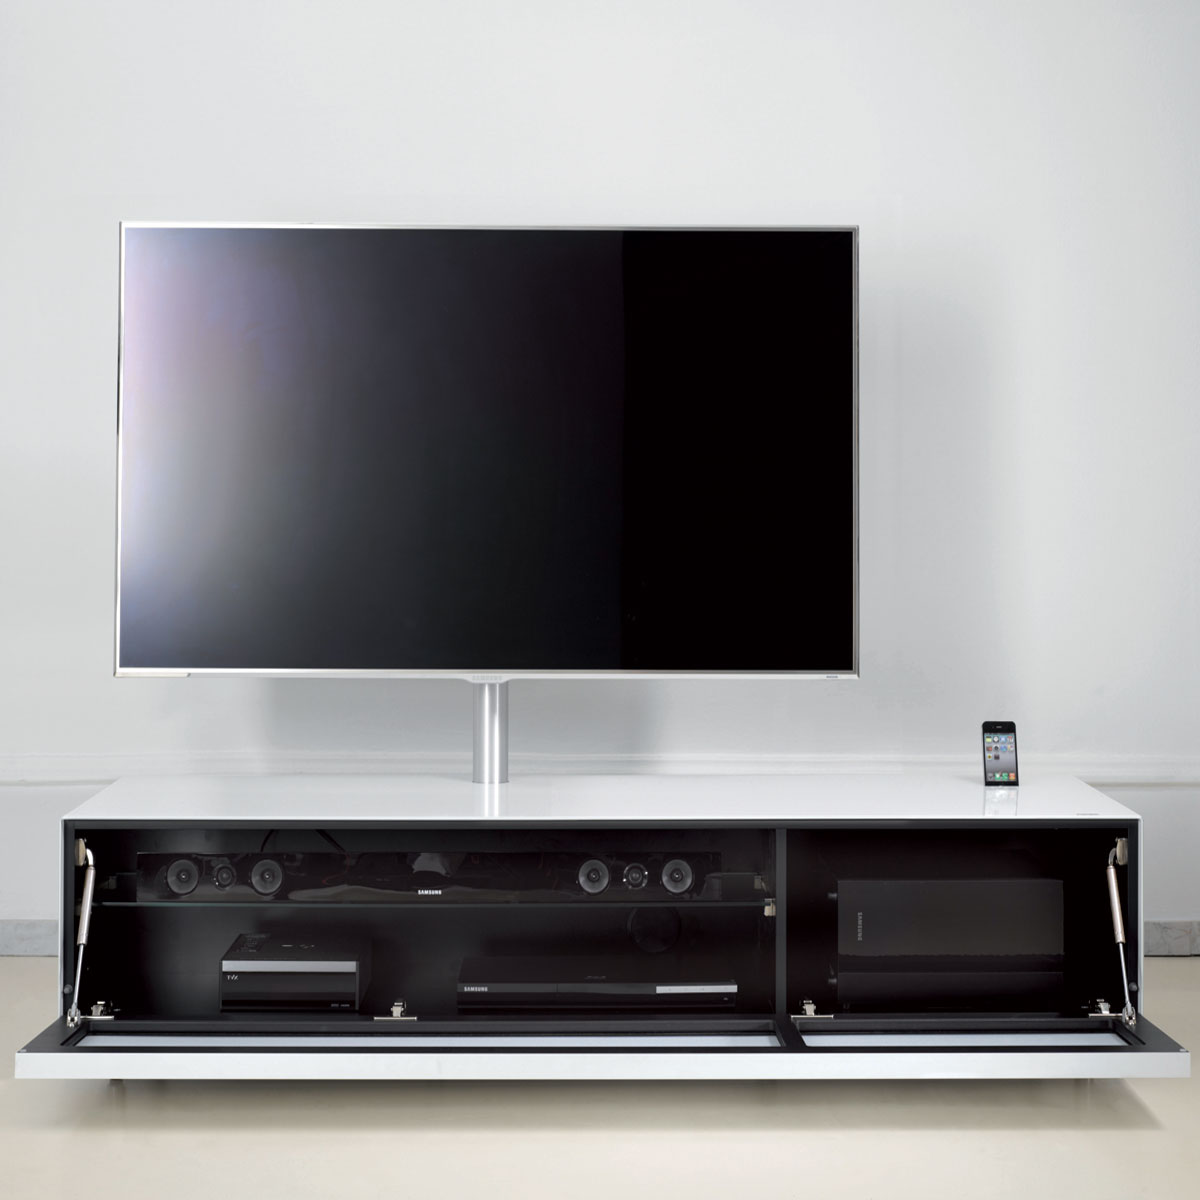 spectral archive tv m bel und hifi m bel guide. Black Bedroom Furniture Sets. Home Design Ideas